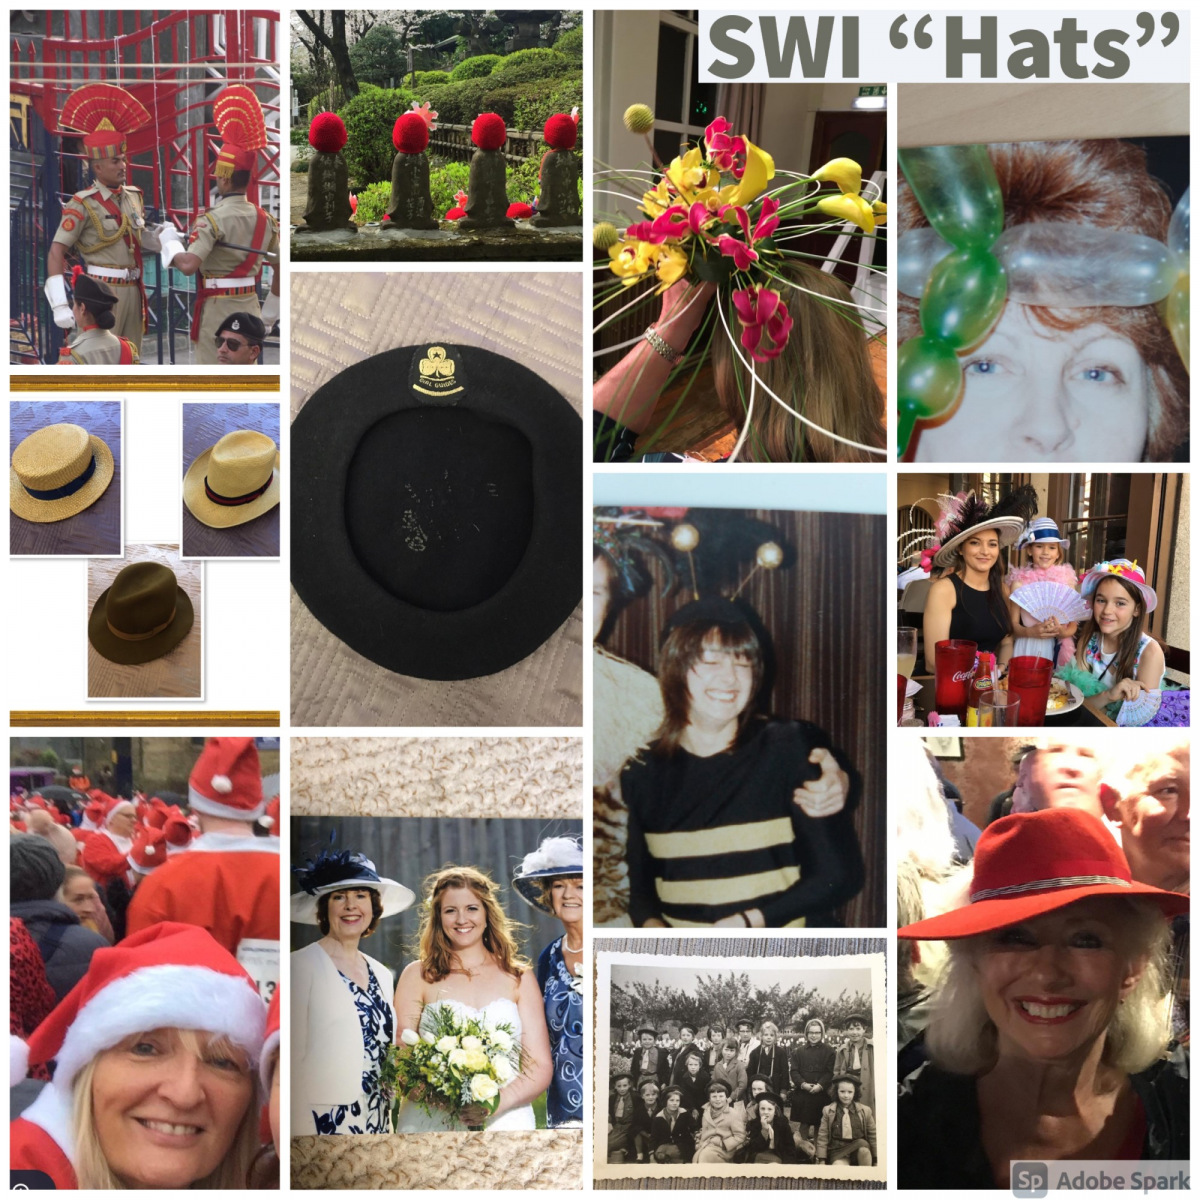 SWI-Hats-part1